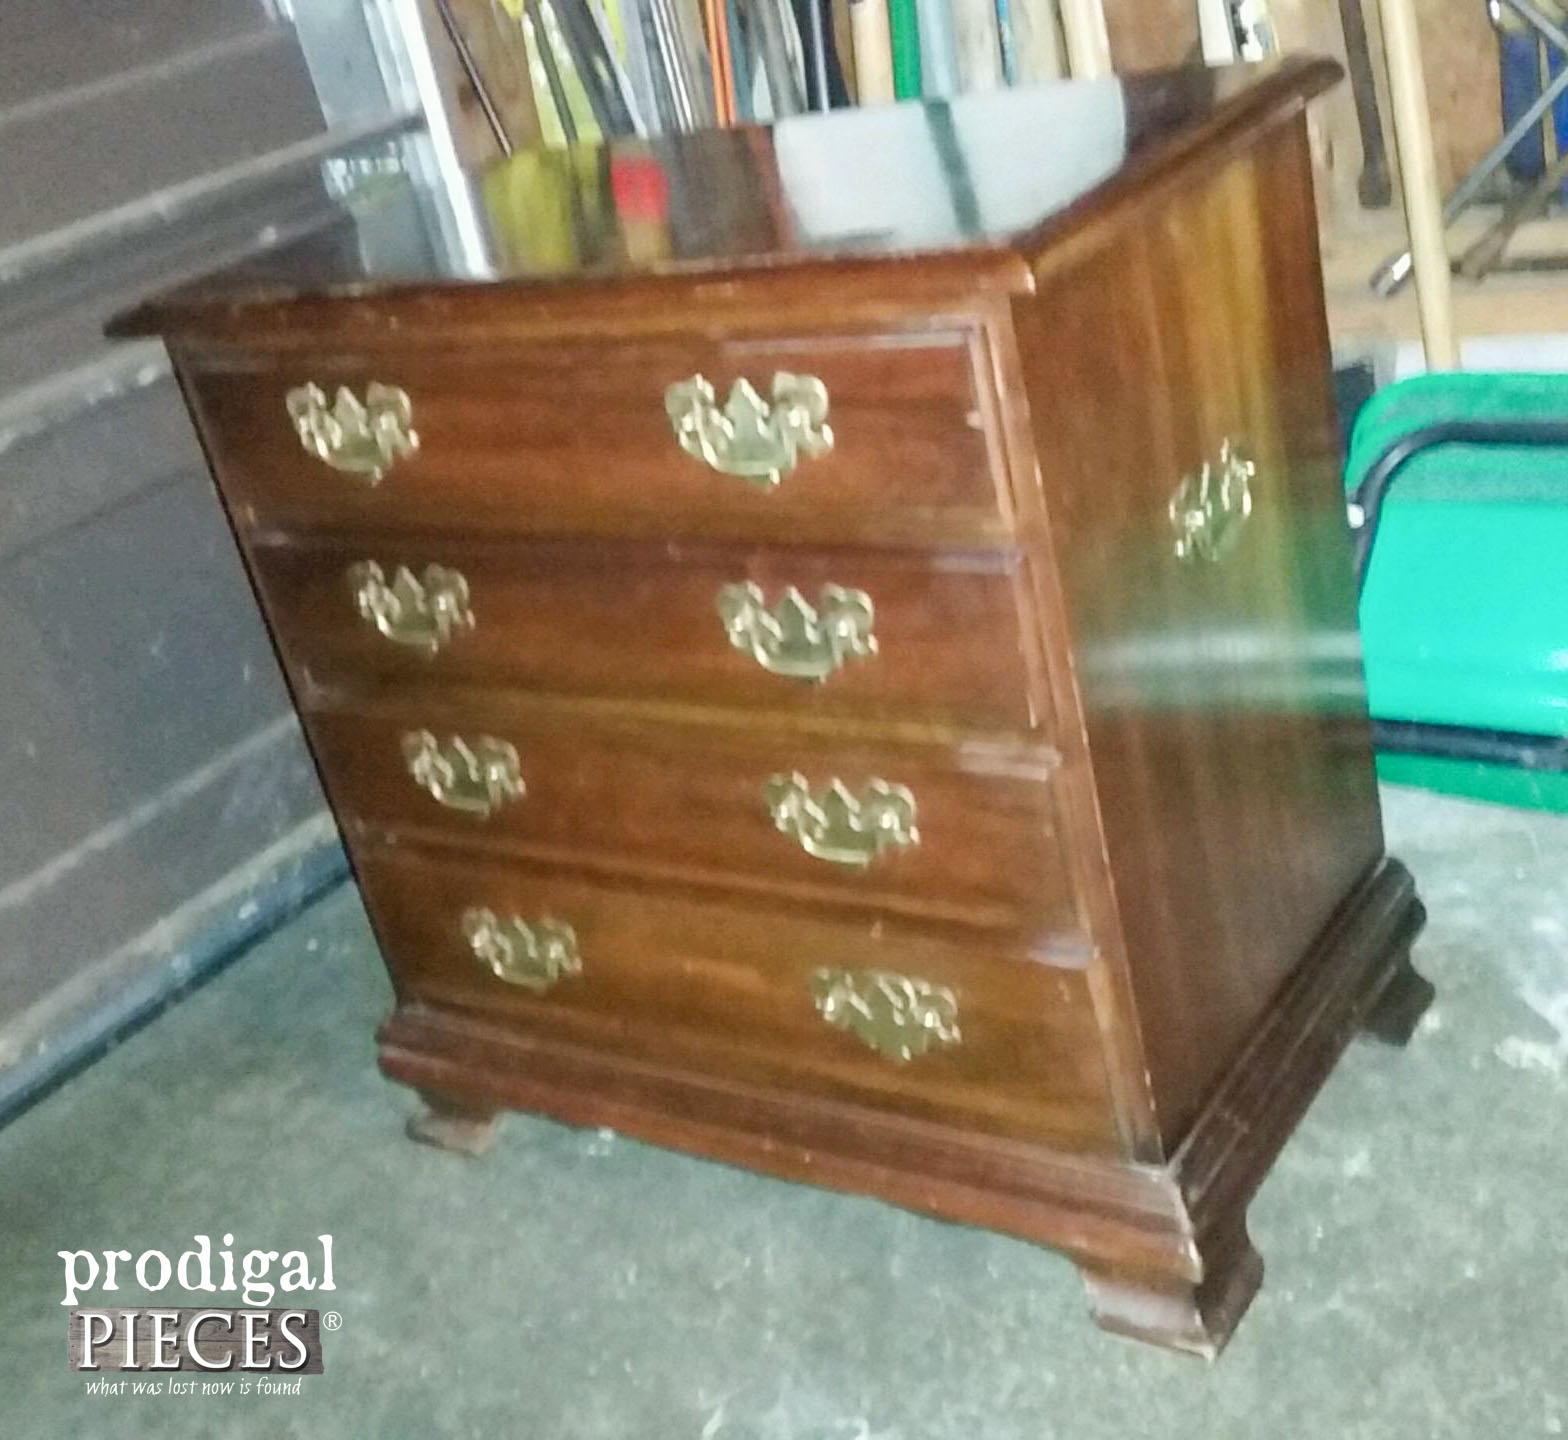 Mid Century Nightstand Before | Prodigal Pieces | prodigalpieces.com